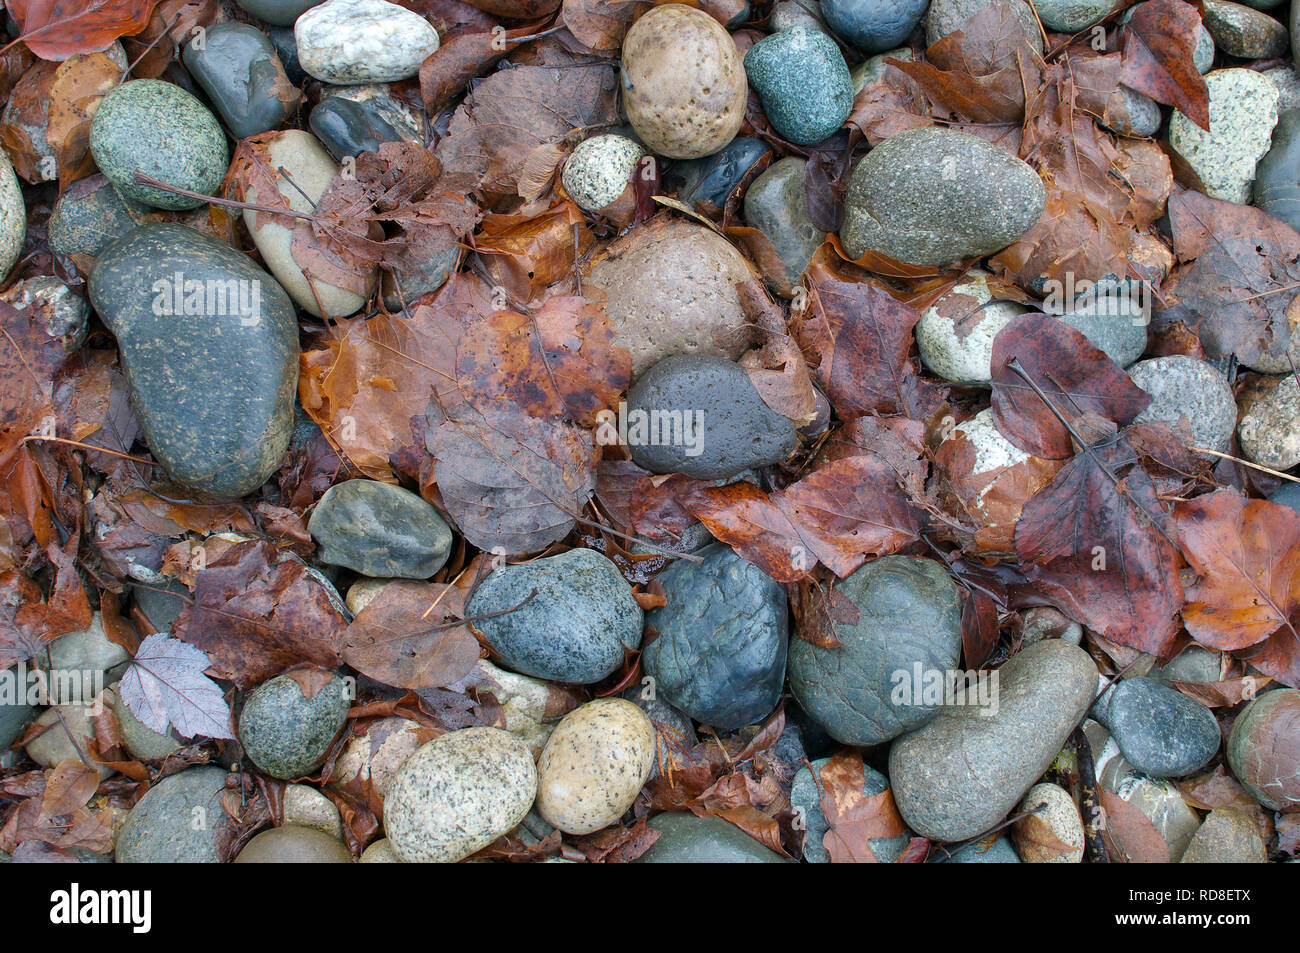 Smooth Landscaping Rocks with Fall Leaves. - Stock Image